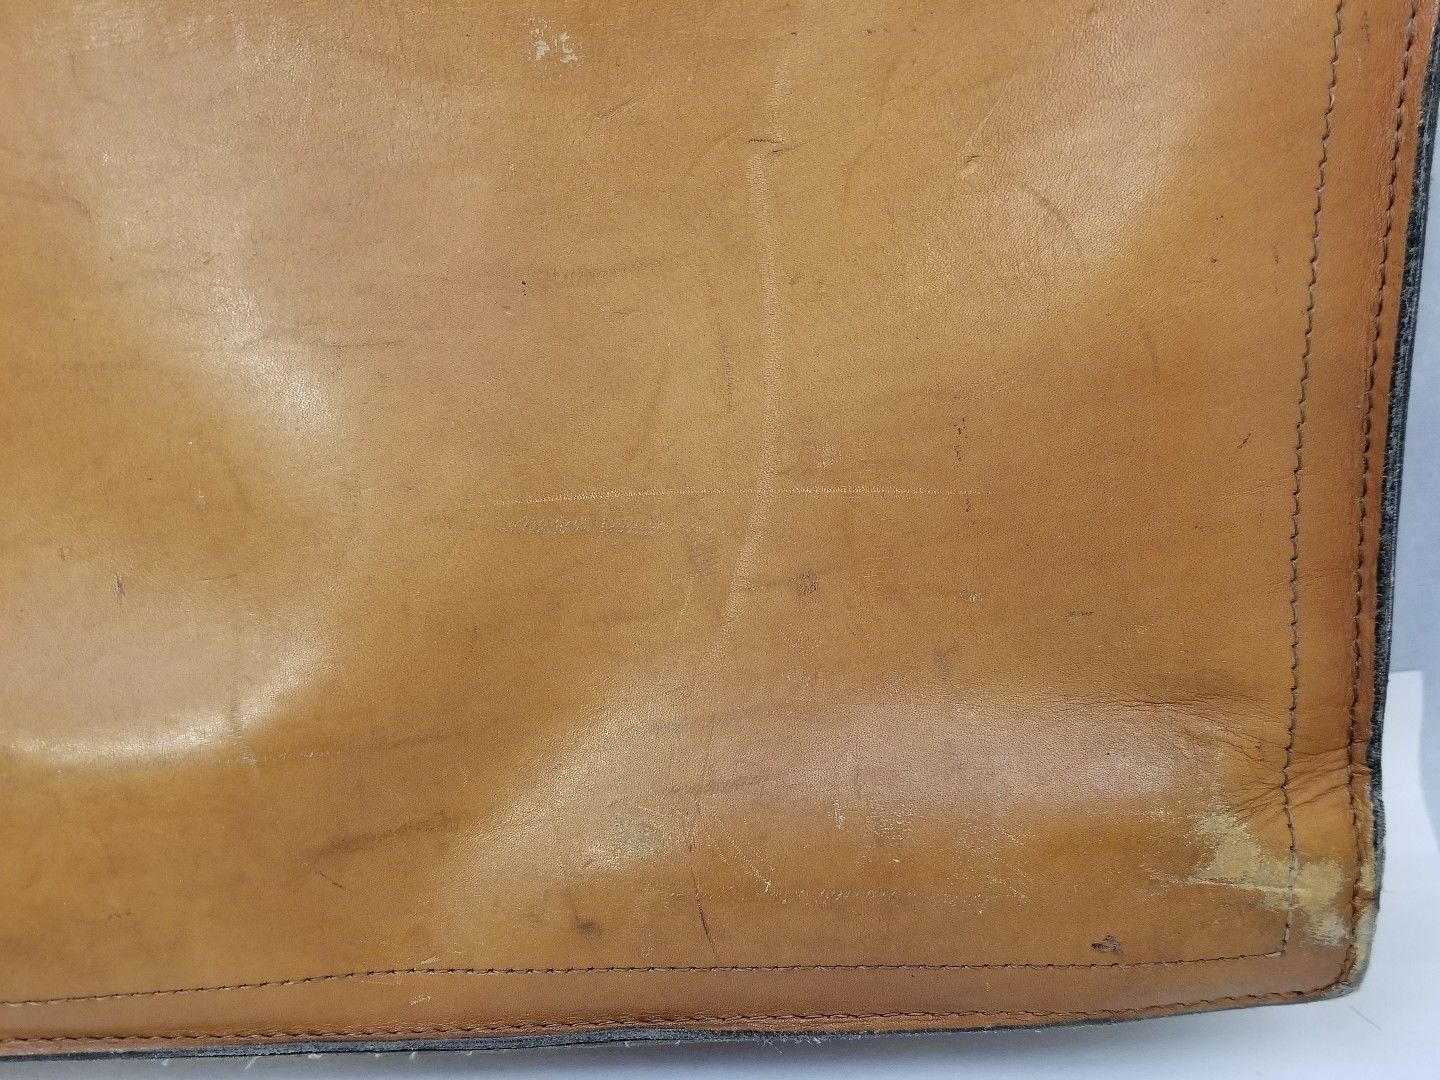 "Vintage Schlesinger Brothers Leather Cloth Briefcase Brown 16.5""x12""x3"" Attache"